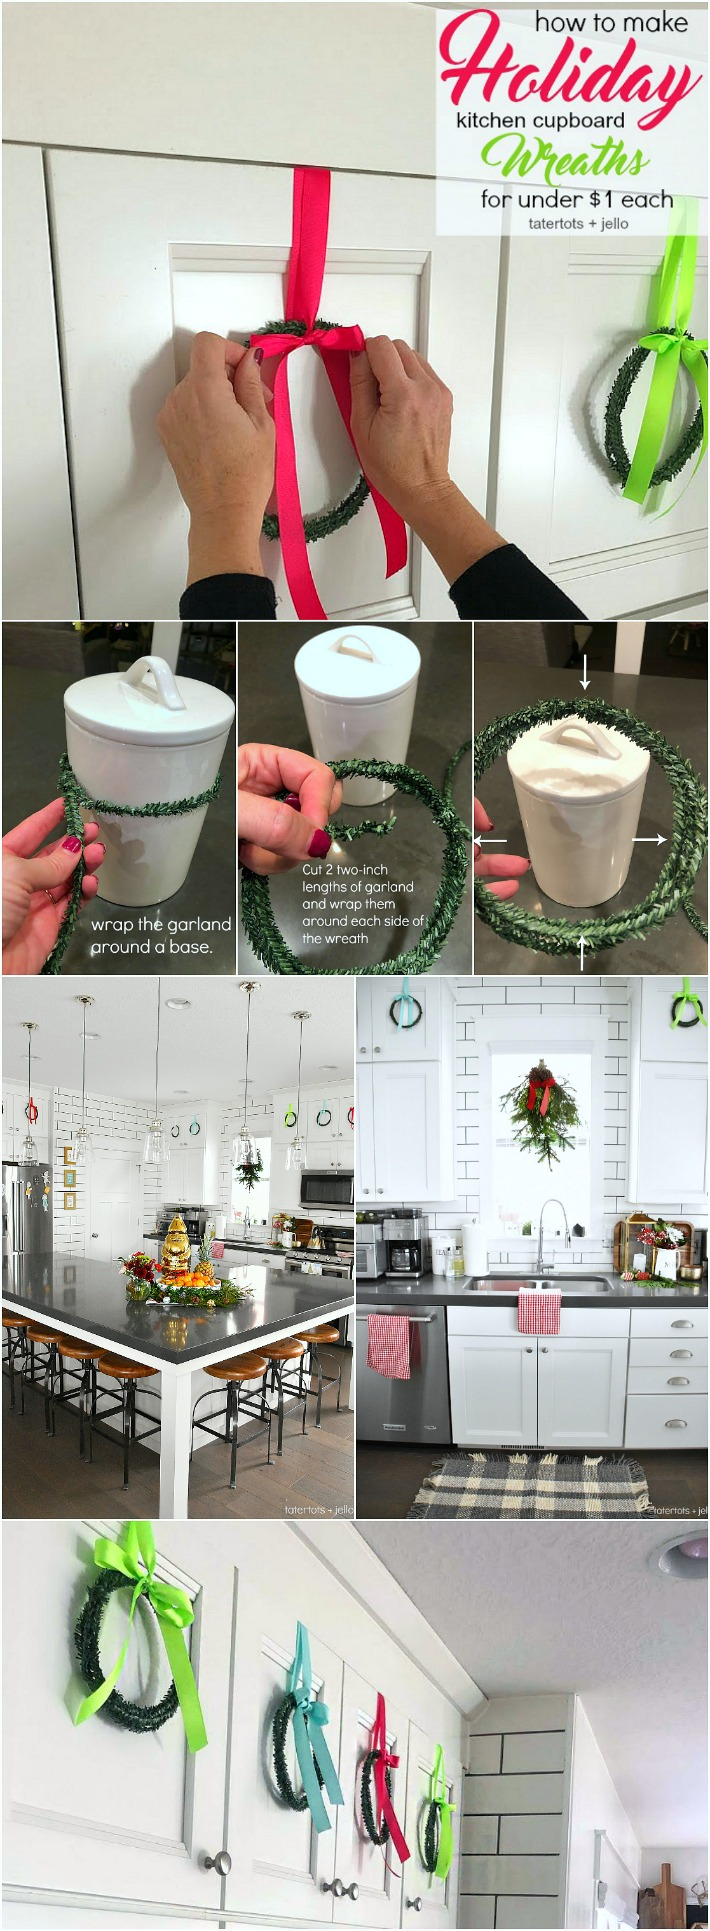 How to make mini cupboard wreaths for under a  dollar. Make mini wreaths out of tiny rolls of garland and hang them on your kitchen cupboards or on the back of chairs for the holidays.